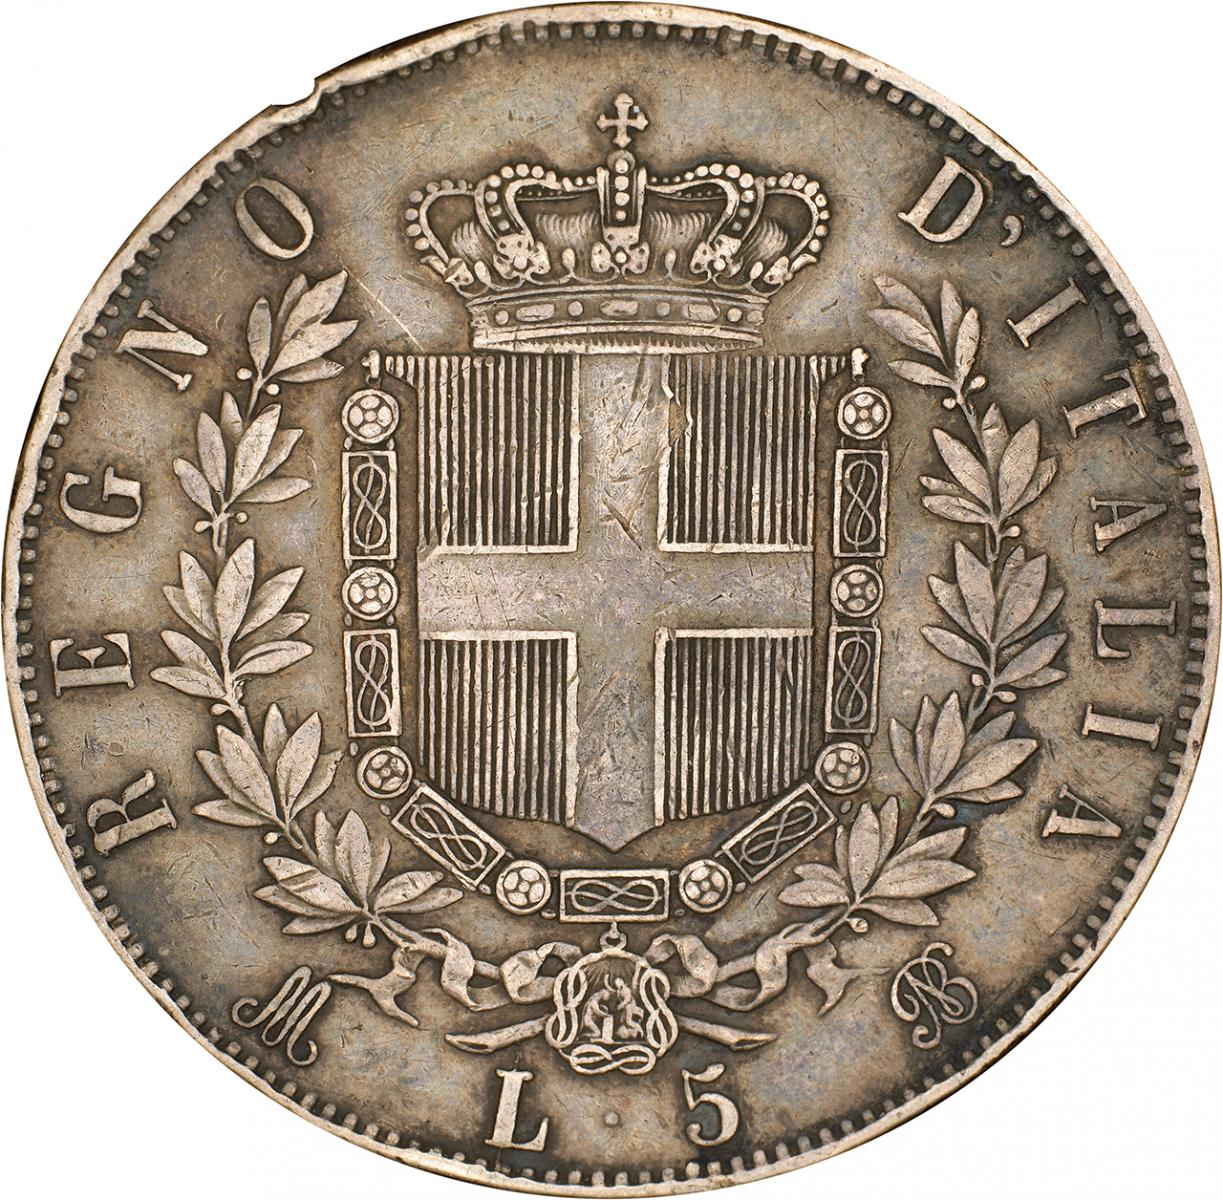 old Italian coin with shield, crown and laurels